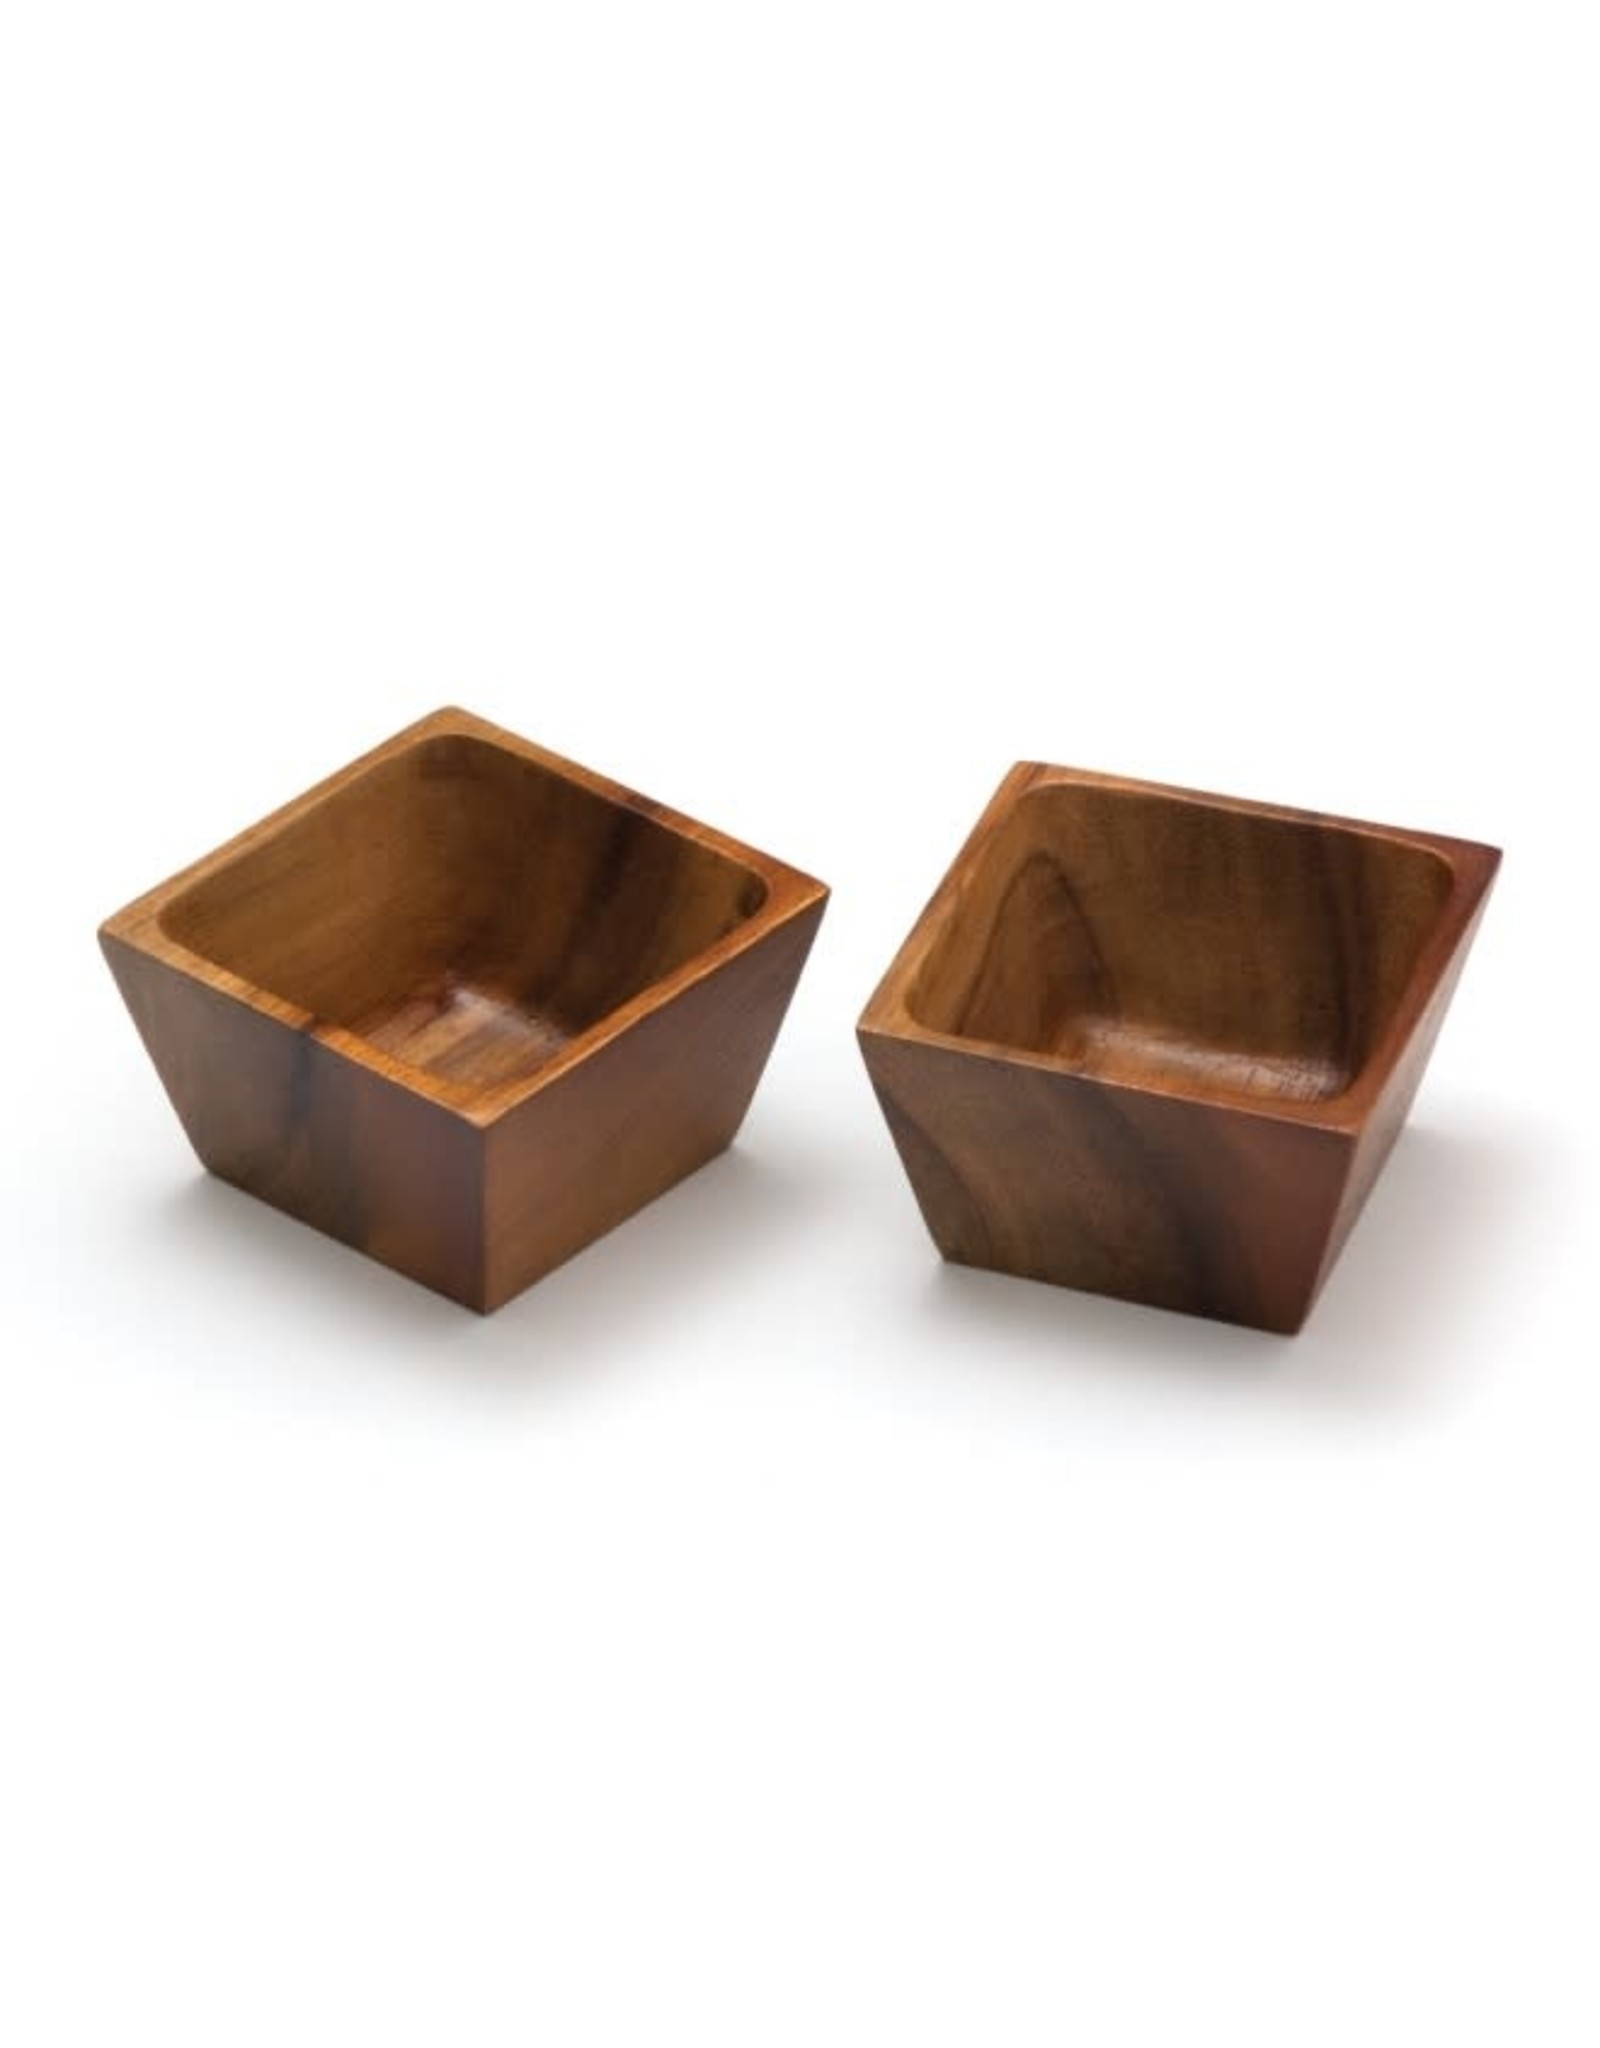 Lipper LIPPER-Acacia Square Pinch Bowls, Set of 2